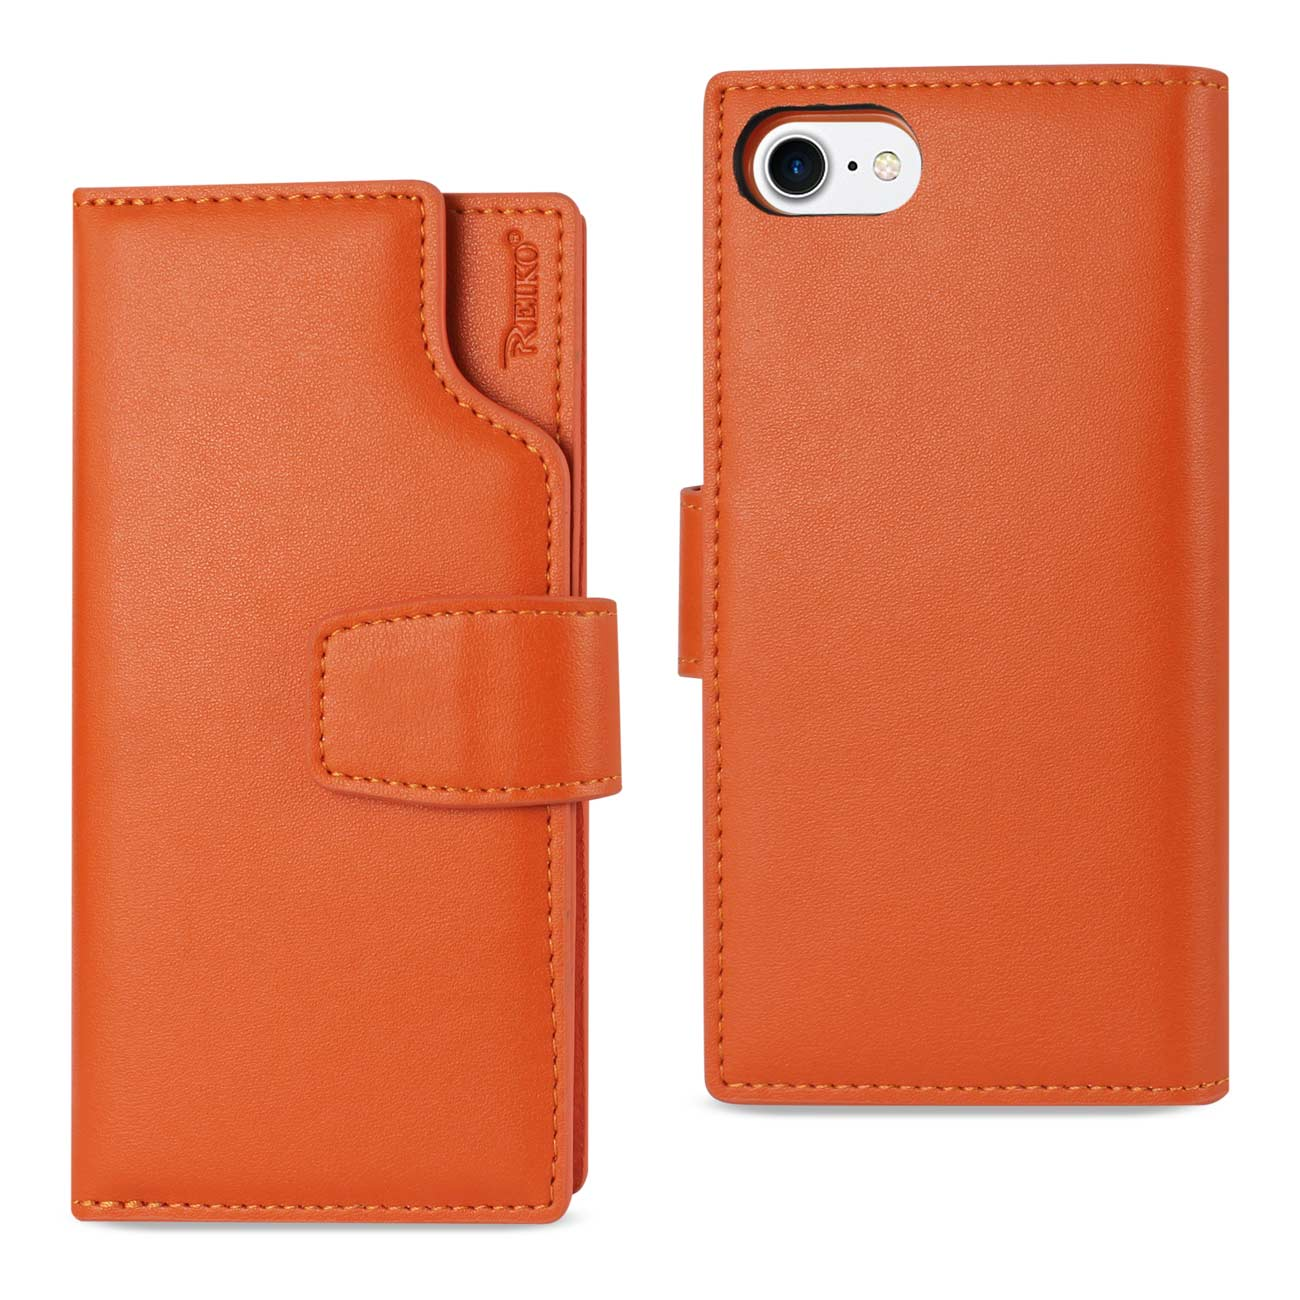 IPHONE 7 GENUINE LEATHER WALLET CASE WITH OPEN THUMB CUT IN TANGERINE